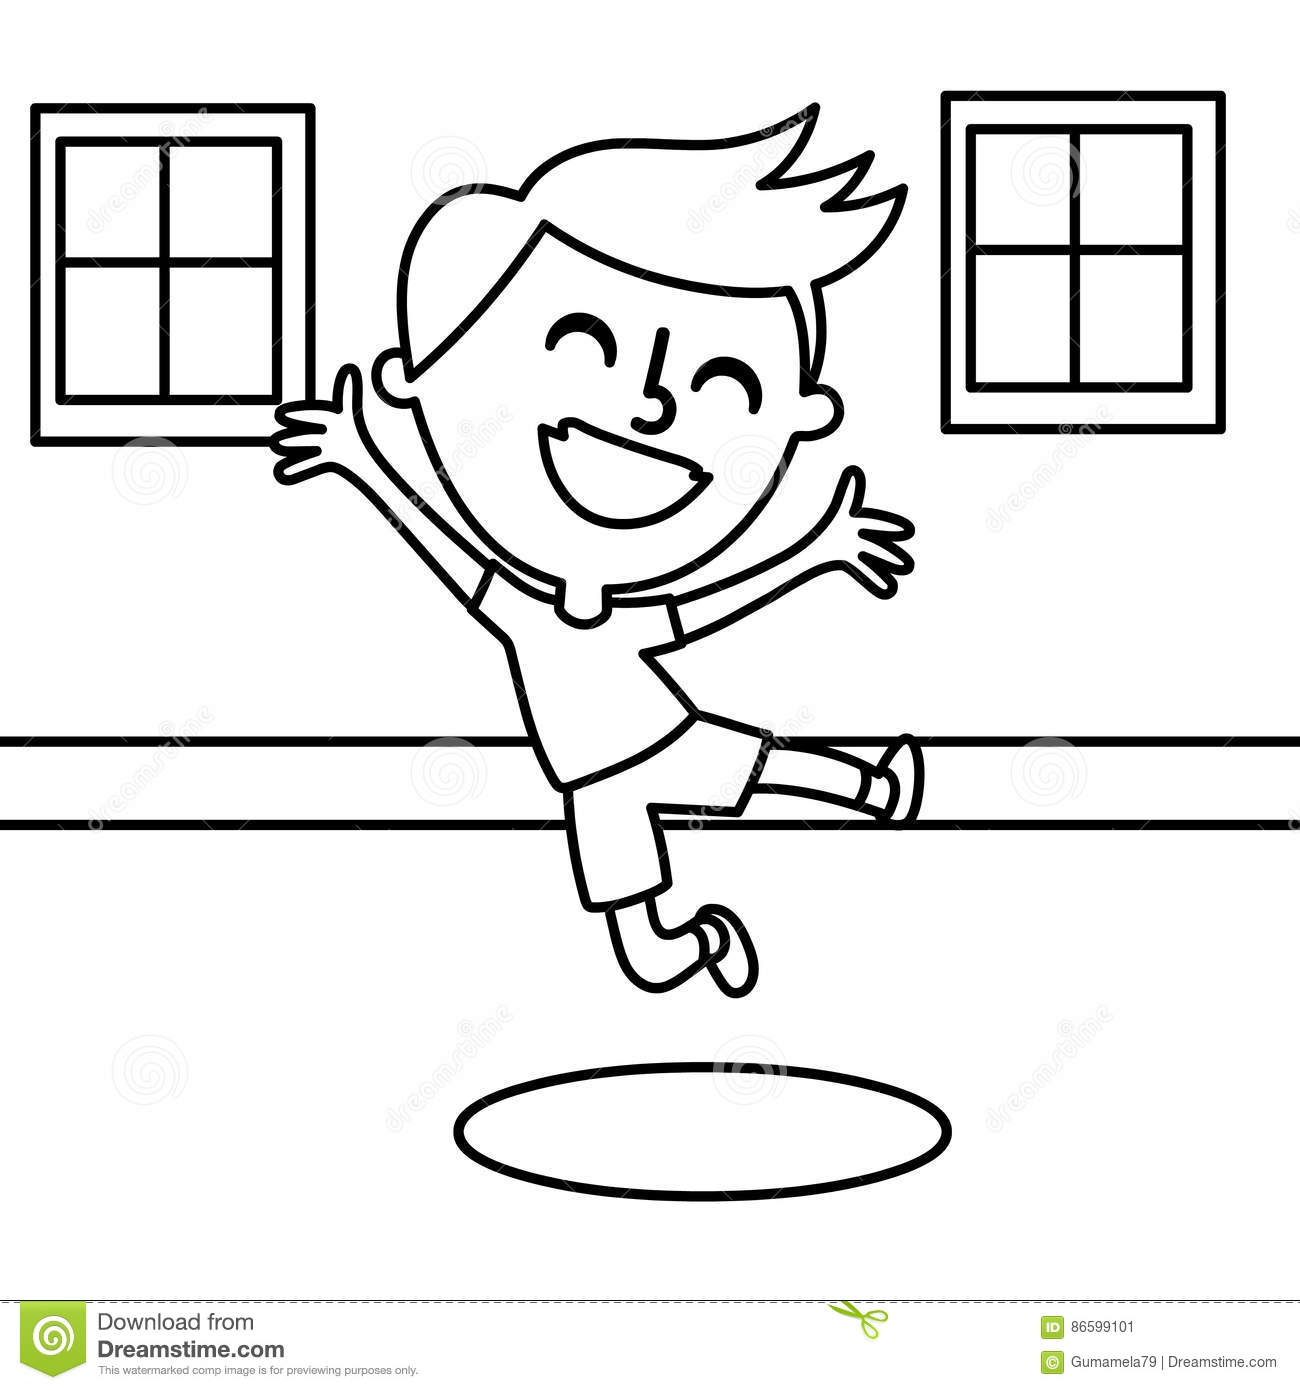 jump coloring pages for kids | Happy boy coloring page stock illustration. Illustration ...